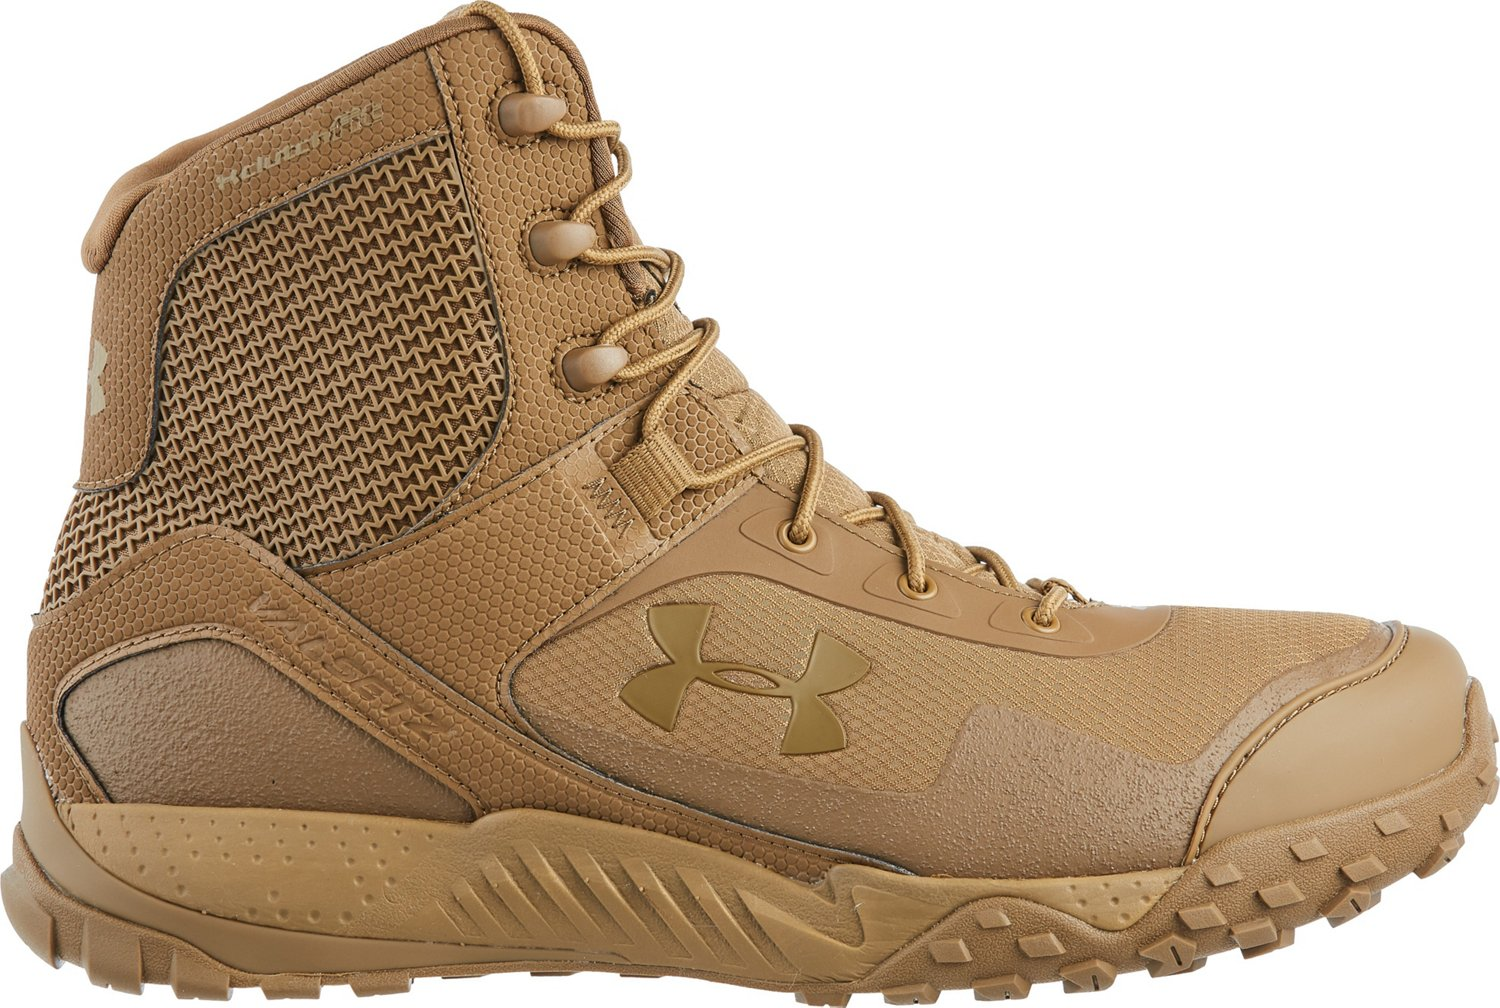 0c9595eddad Display product reviews for Under Armour Men s Valsetz RTS 1.5 Tactical  Boots